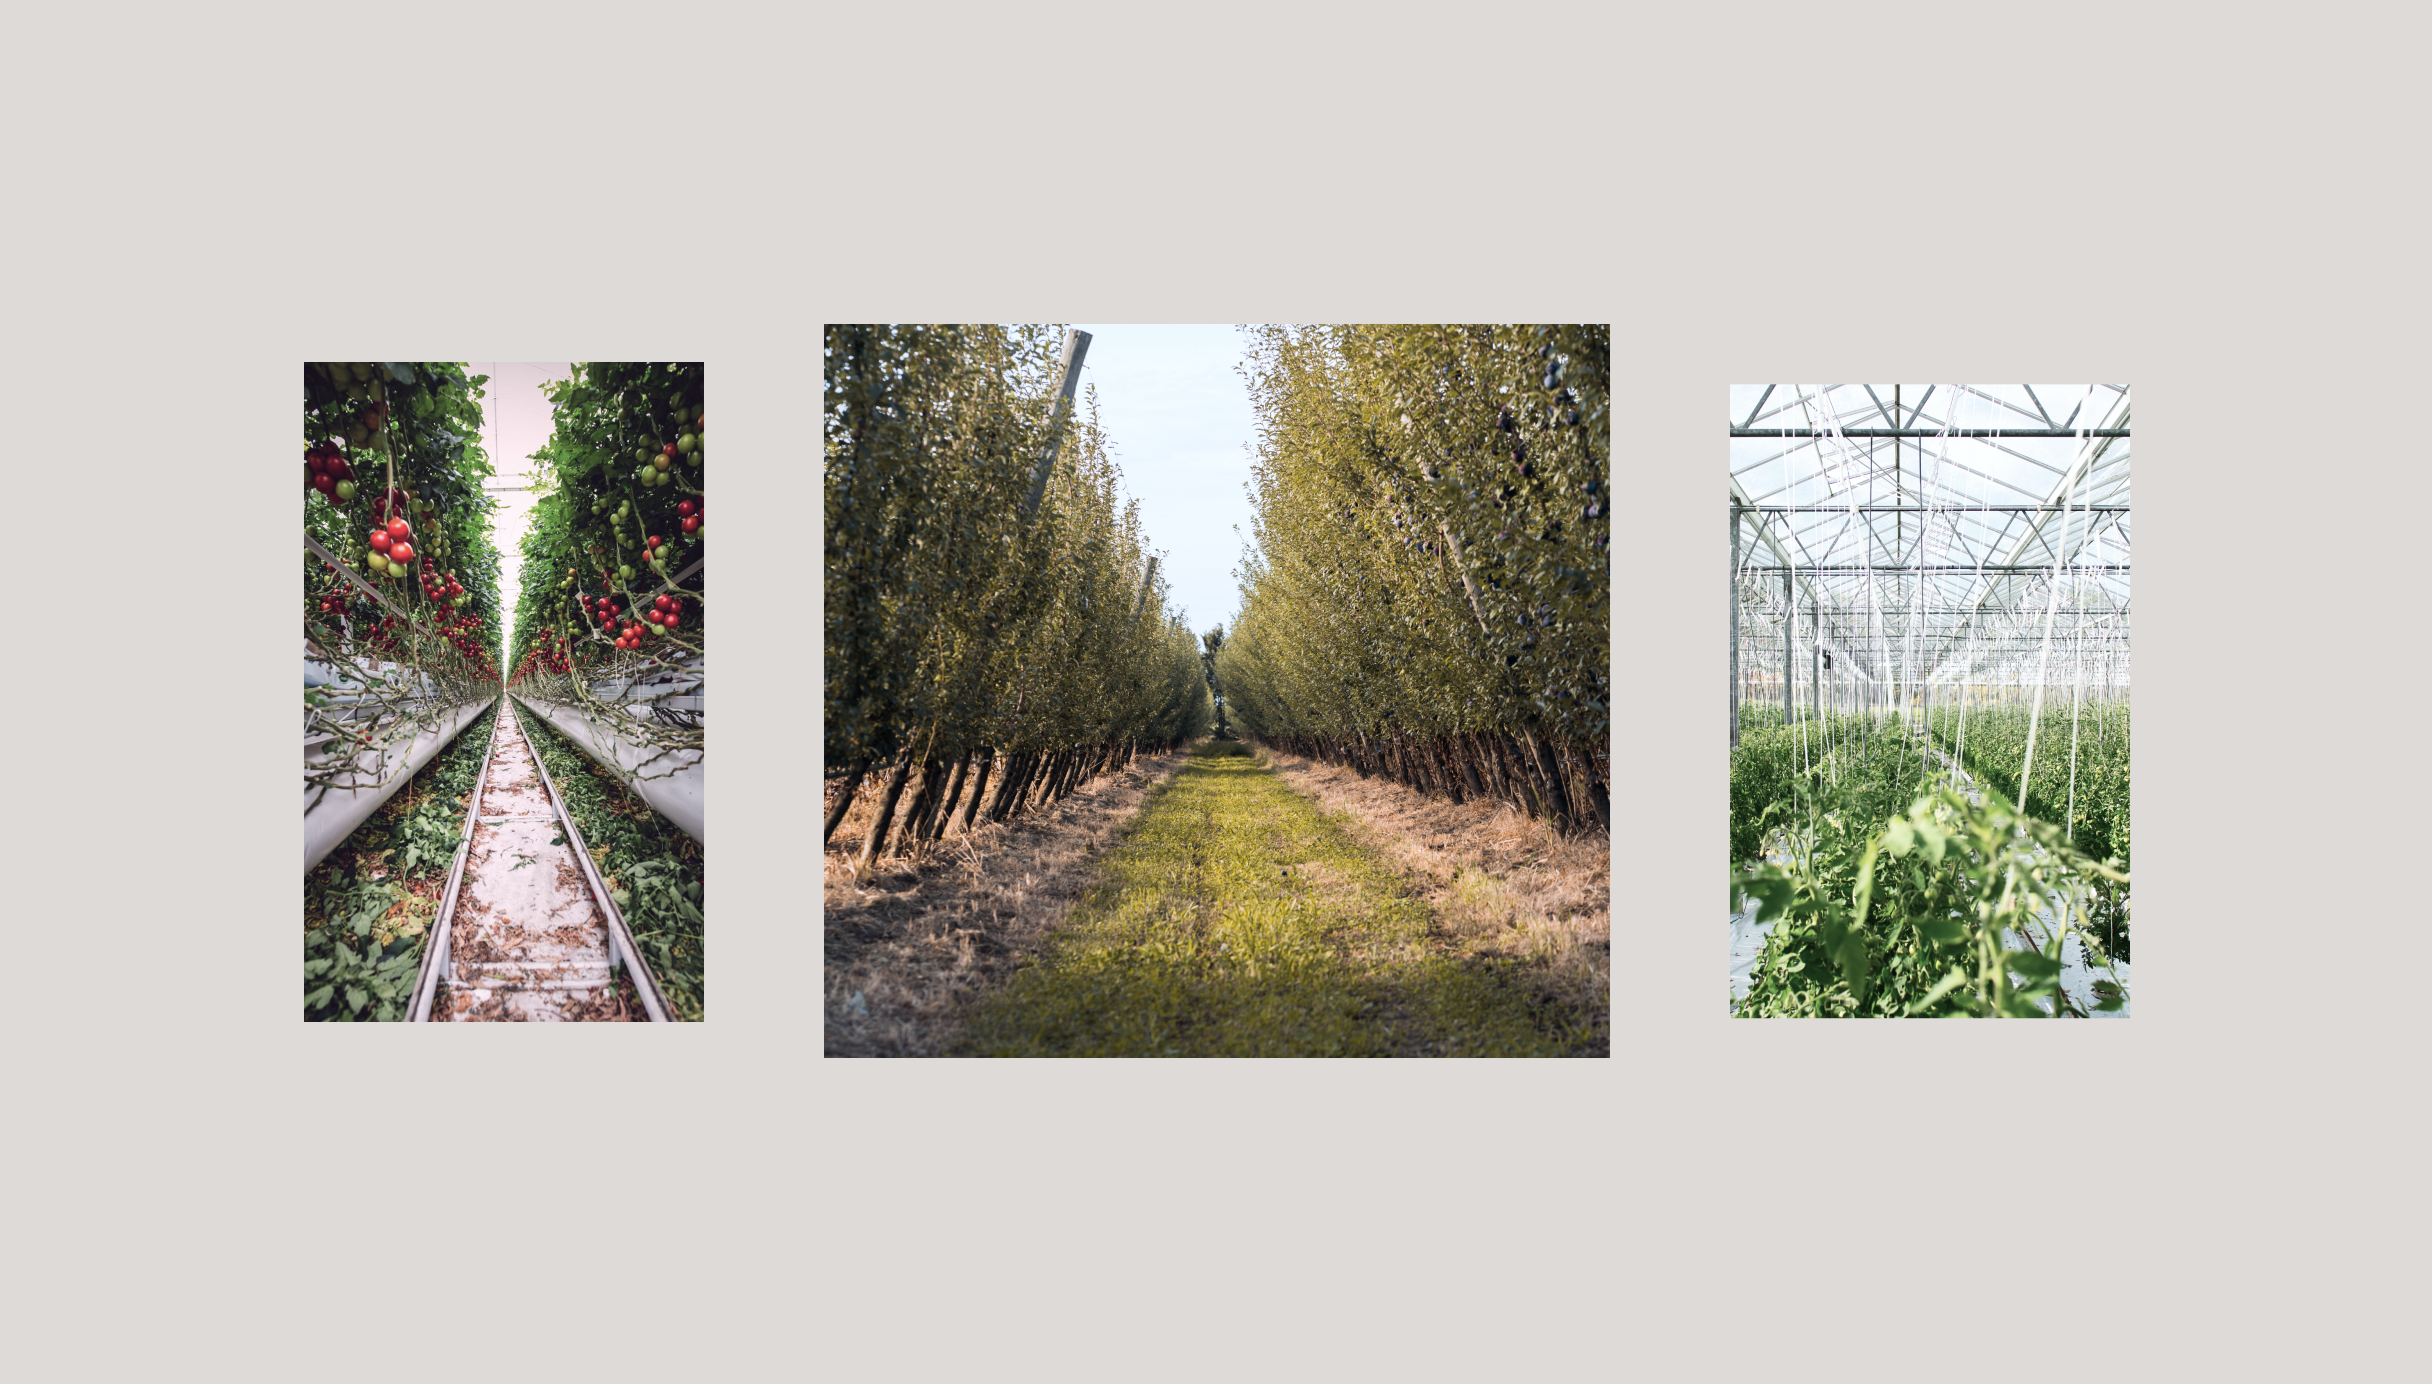 Three images taken of various greenhouses and vineyards